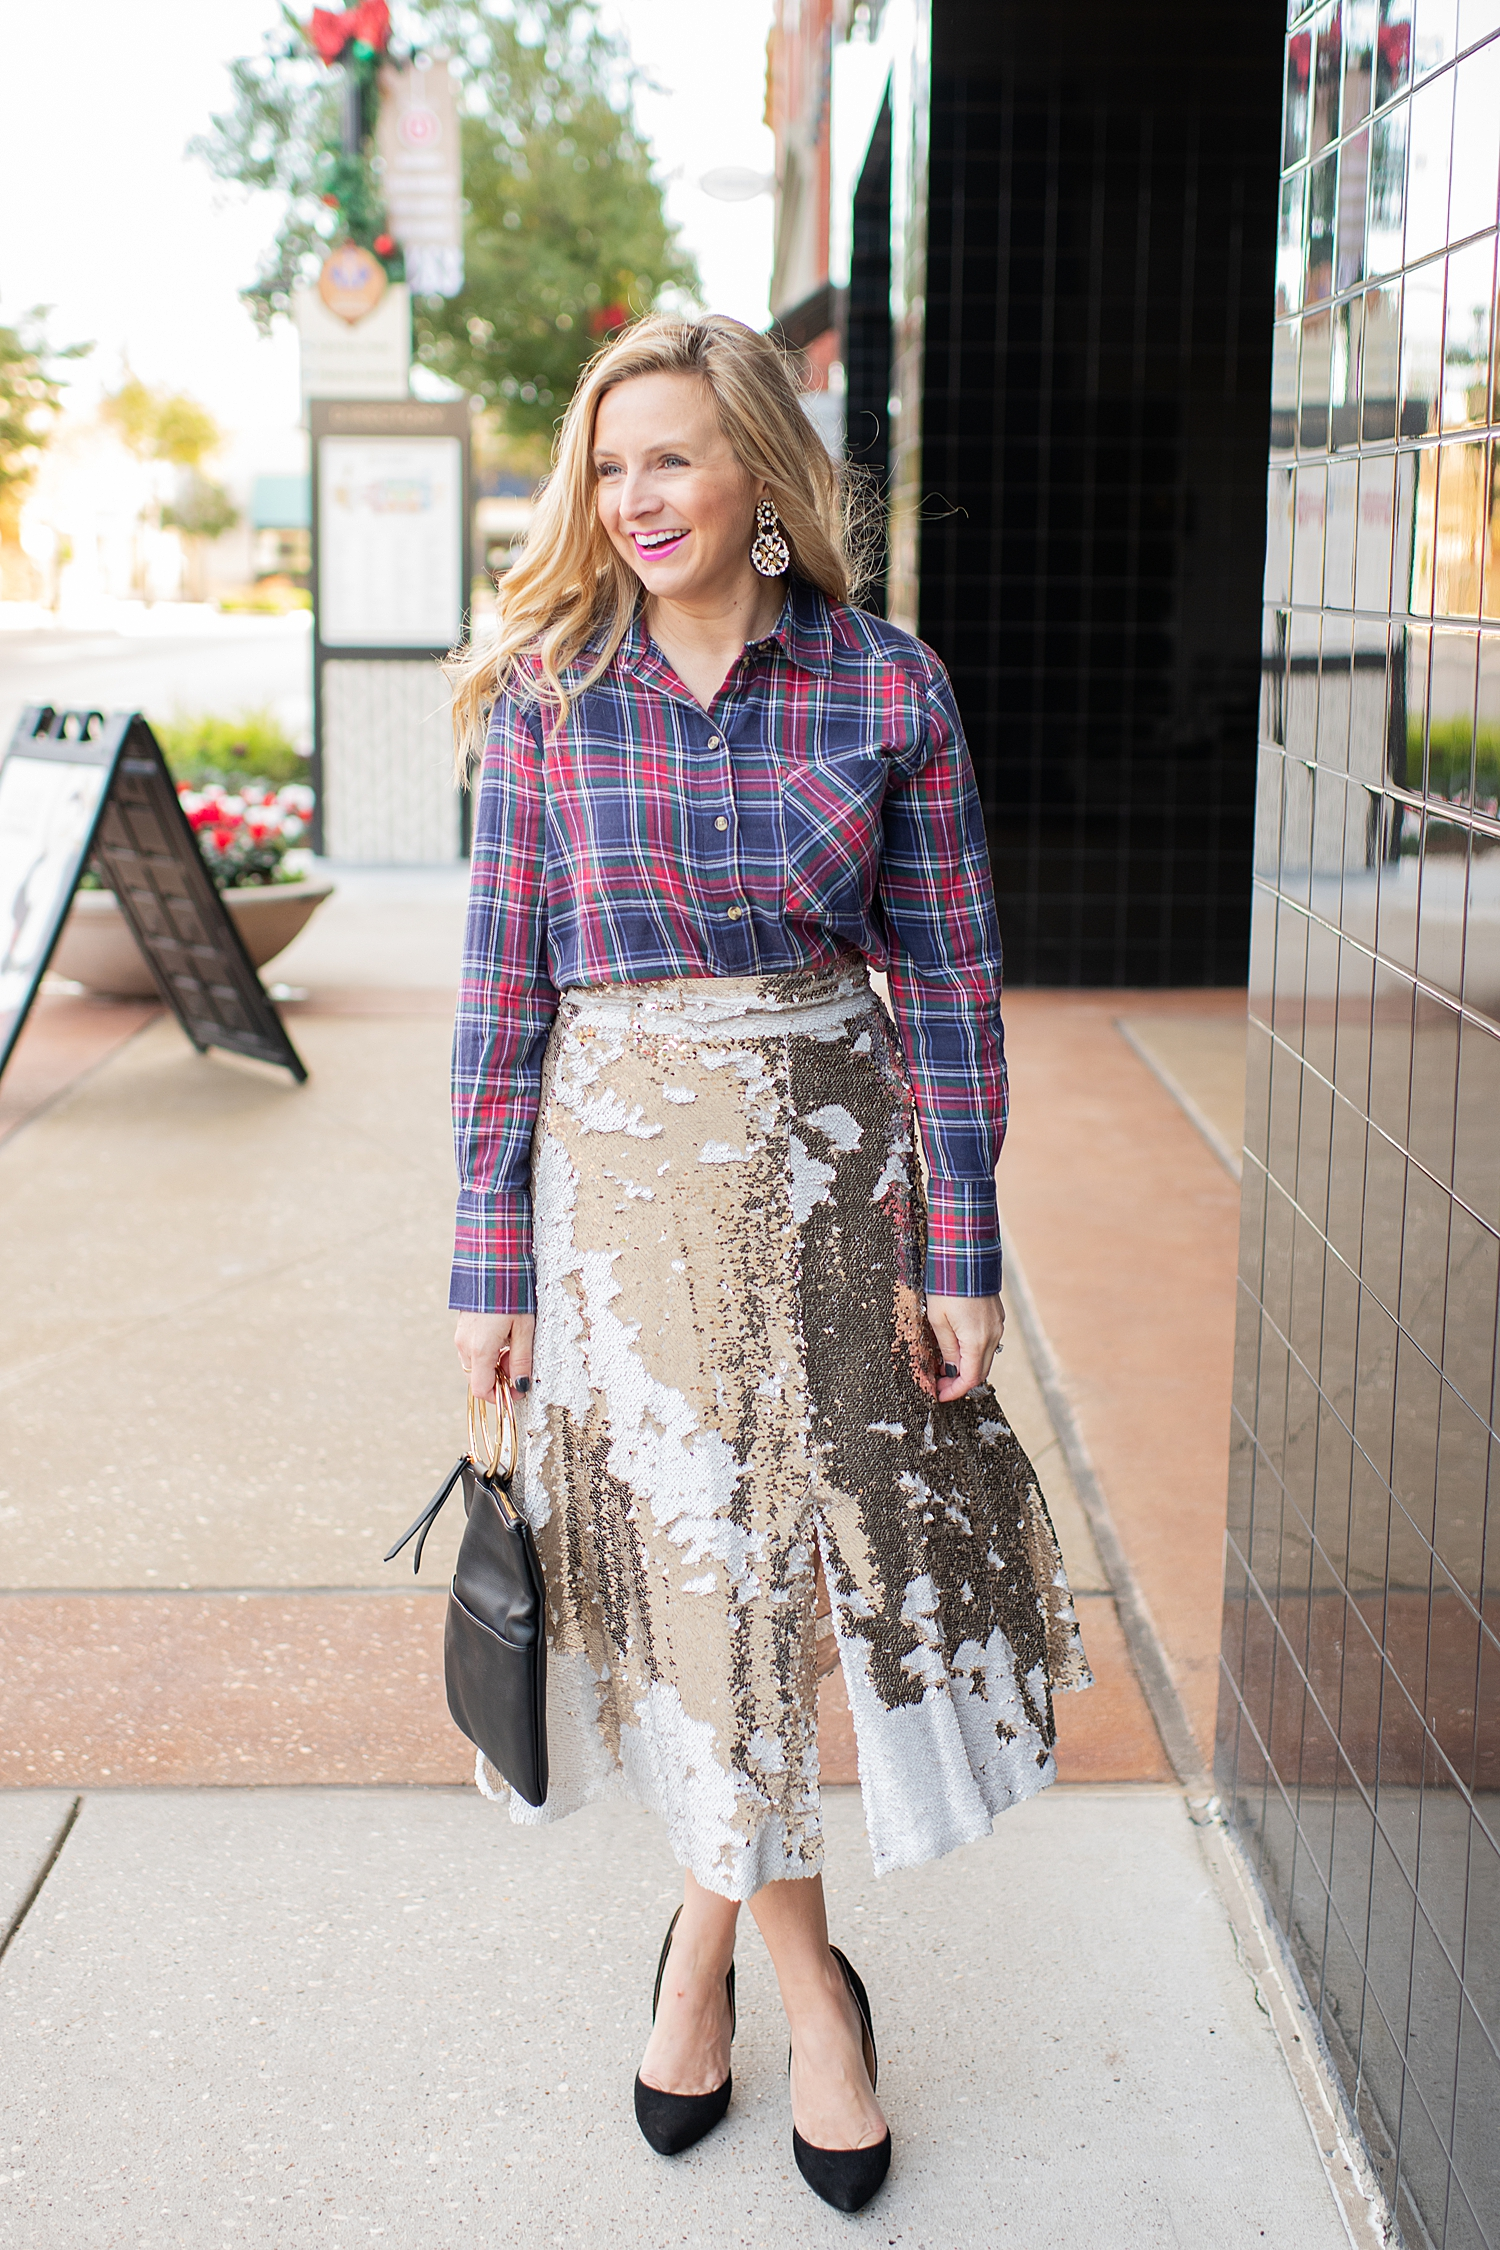 Top Houston fashion blogger, Fancy Ashley, features 7 Holiday Outfits perfect for the season: image of a woman wearing TOPSHOP plaid shirt, Eliza J sequin skirt, Kate Spade earrings, blck clutch all available at Nordstrom